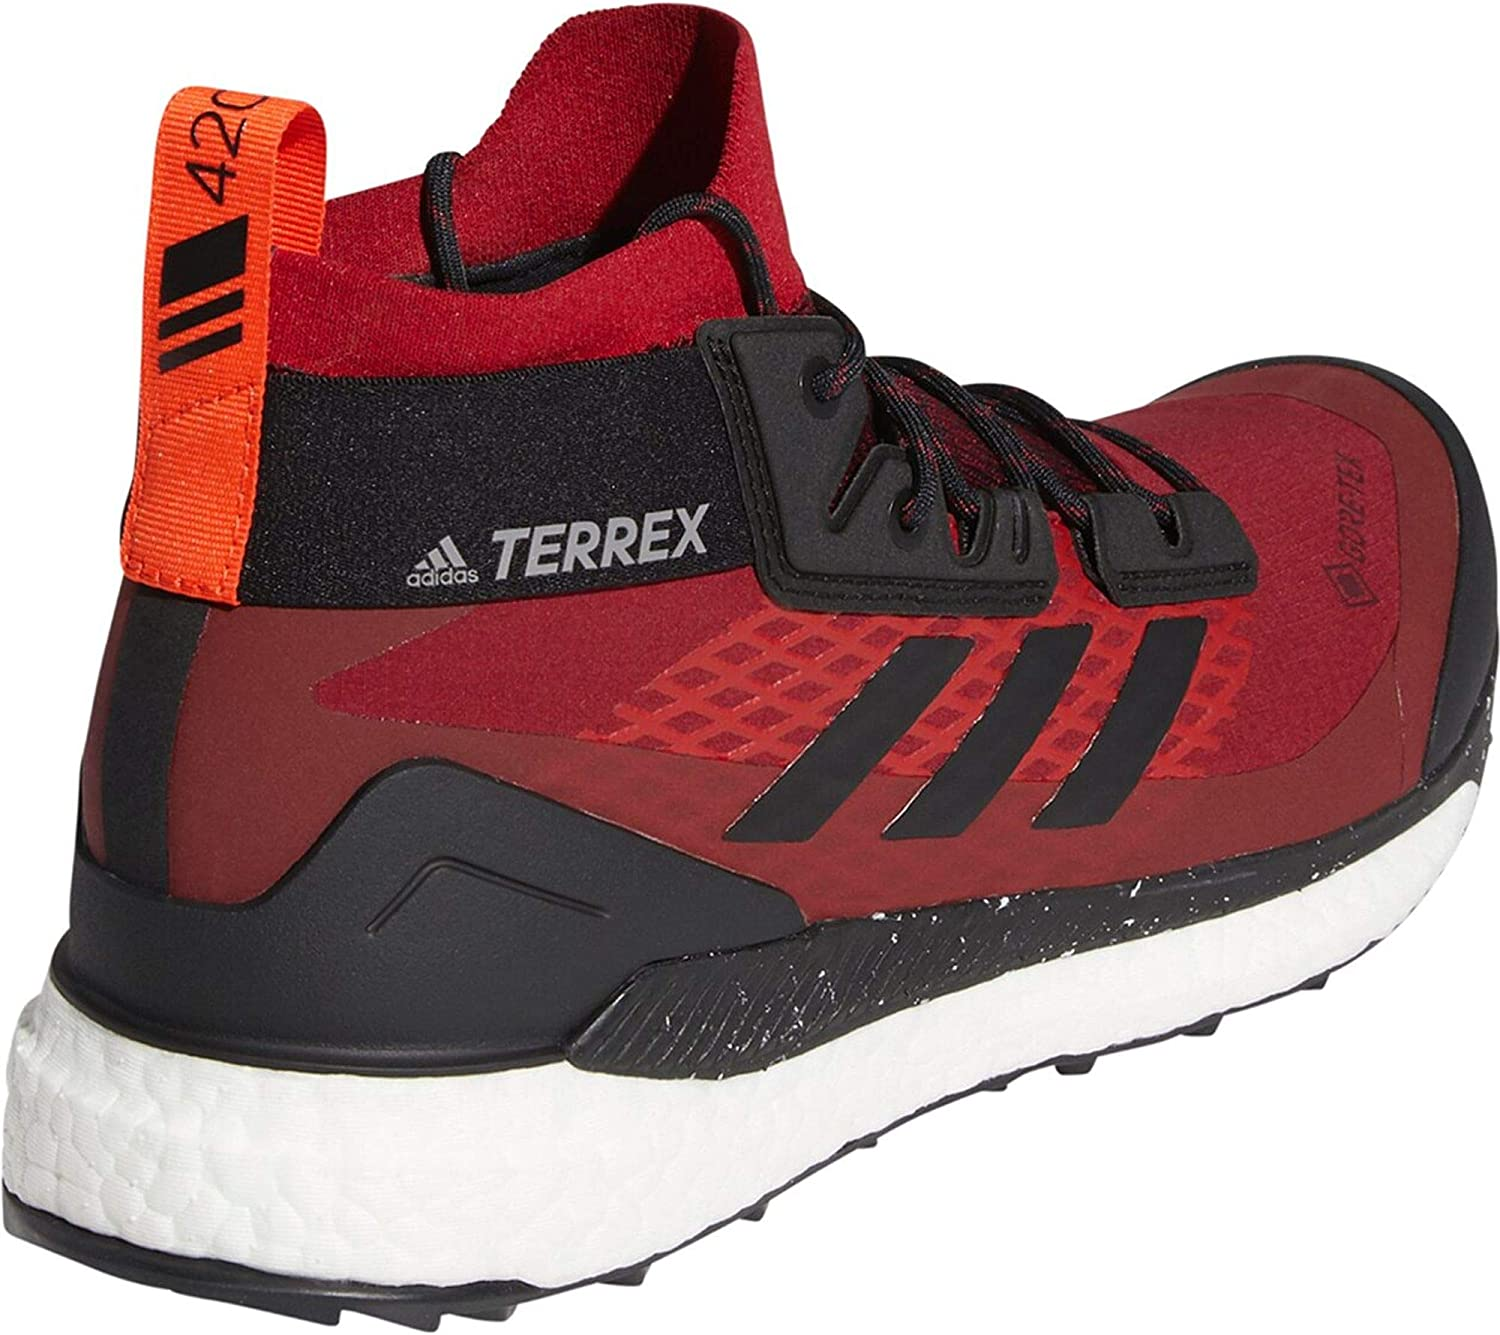 adidas waterproof shoes india price